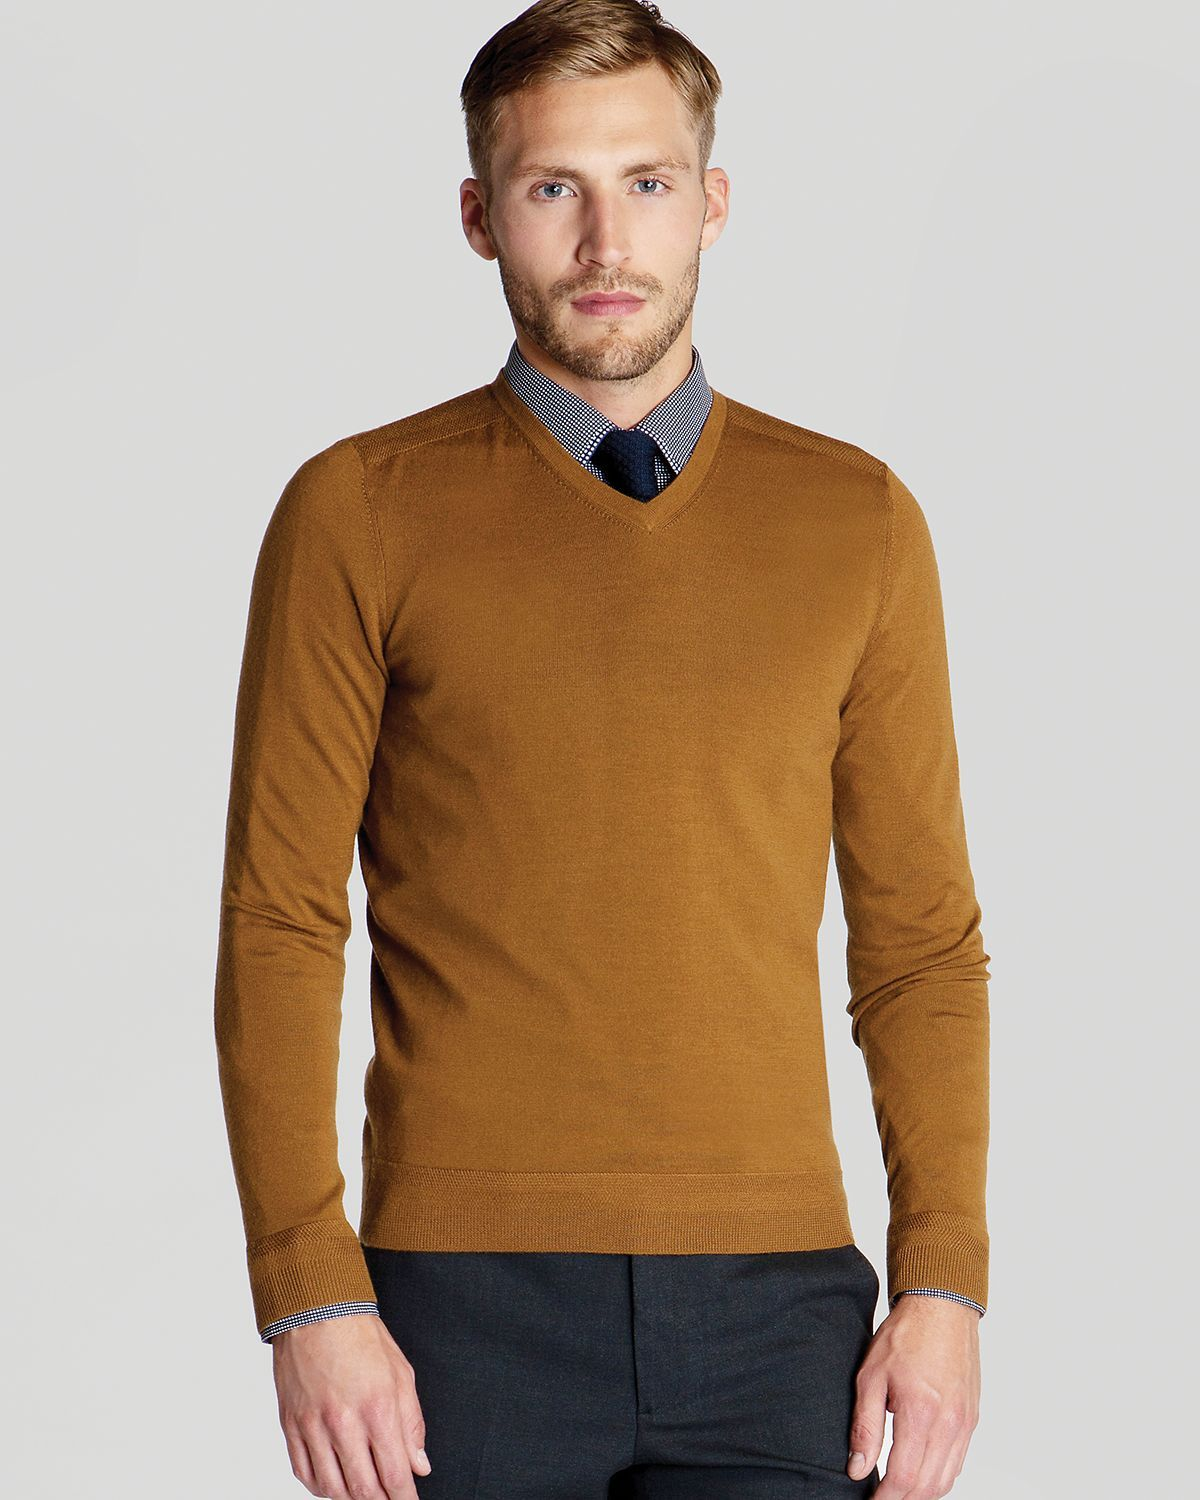 Men's Brown Bagbo Merino V Neck Sweater | Ted baker and Ted